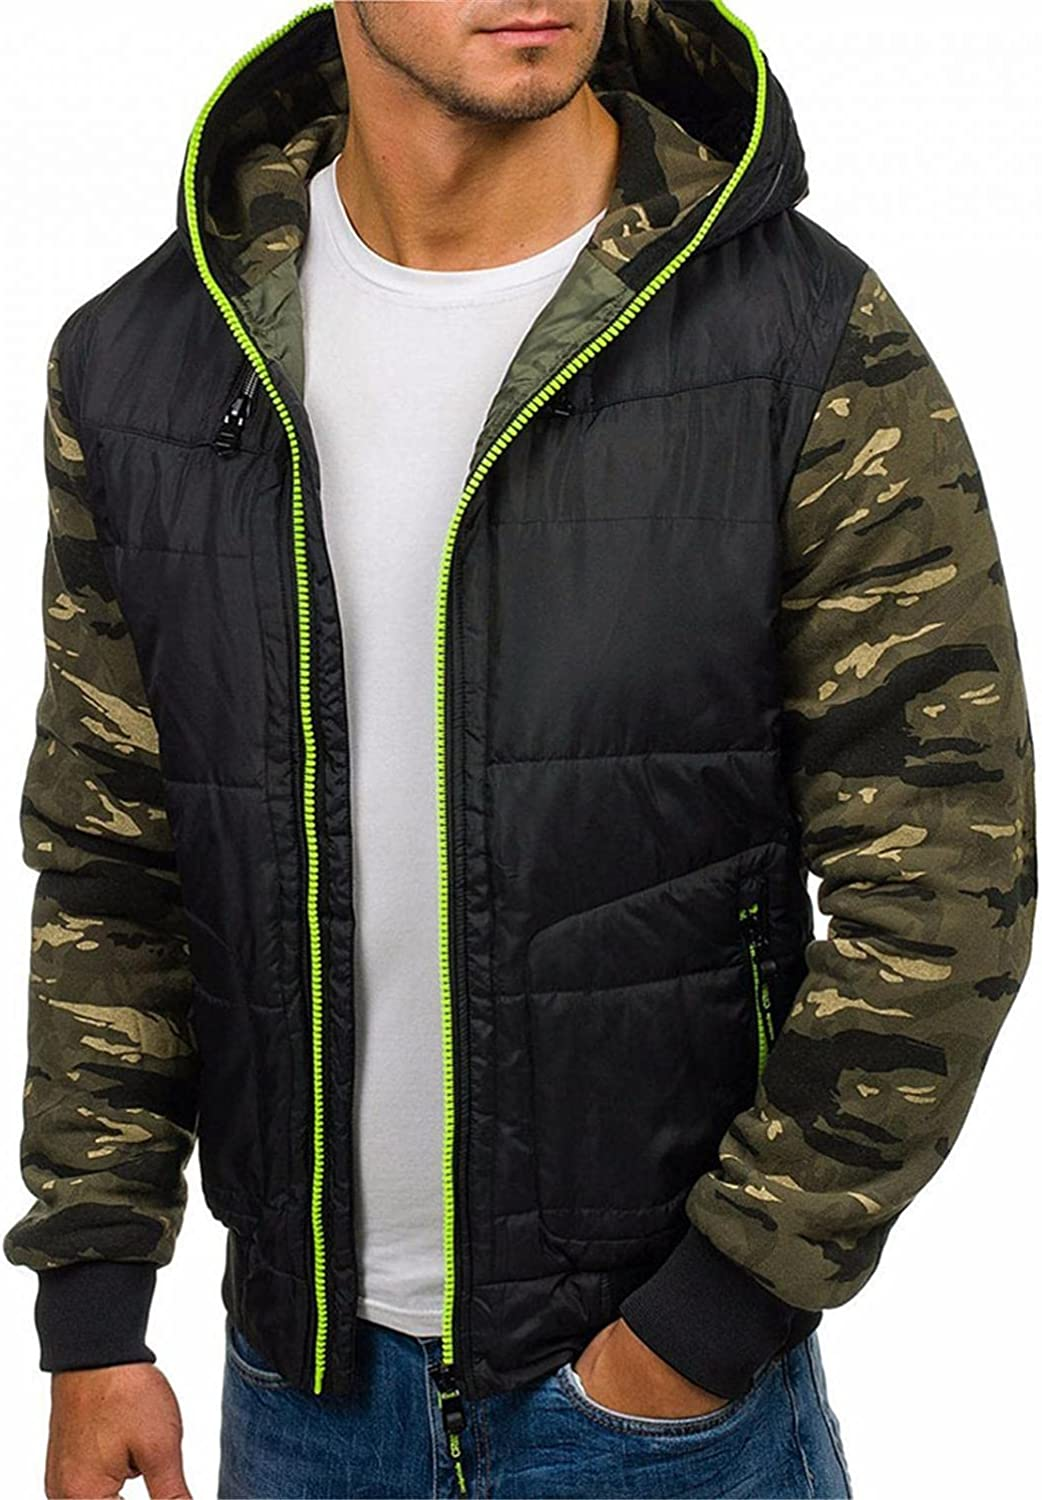 XUNFUN Camo Puffer Jacket Men with Hood Ultra Loft Quilted Packable Contrast Down Jackets Fashion Thick Winter Coat Outwear